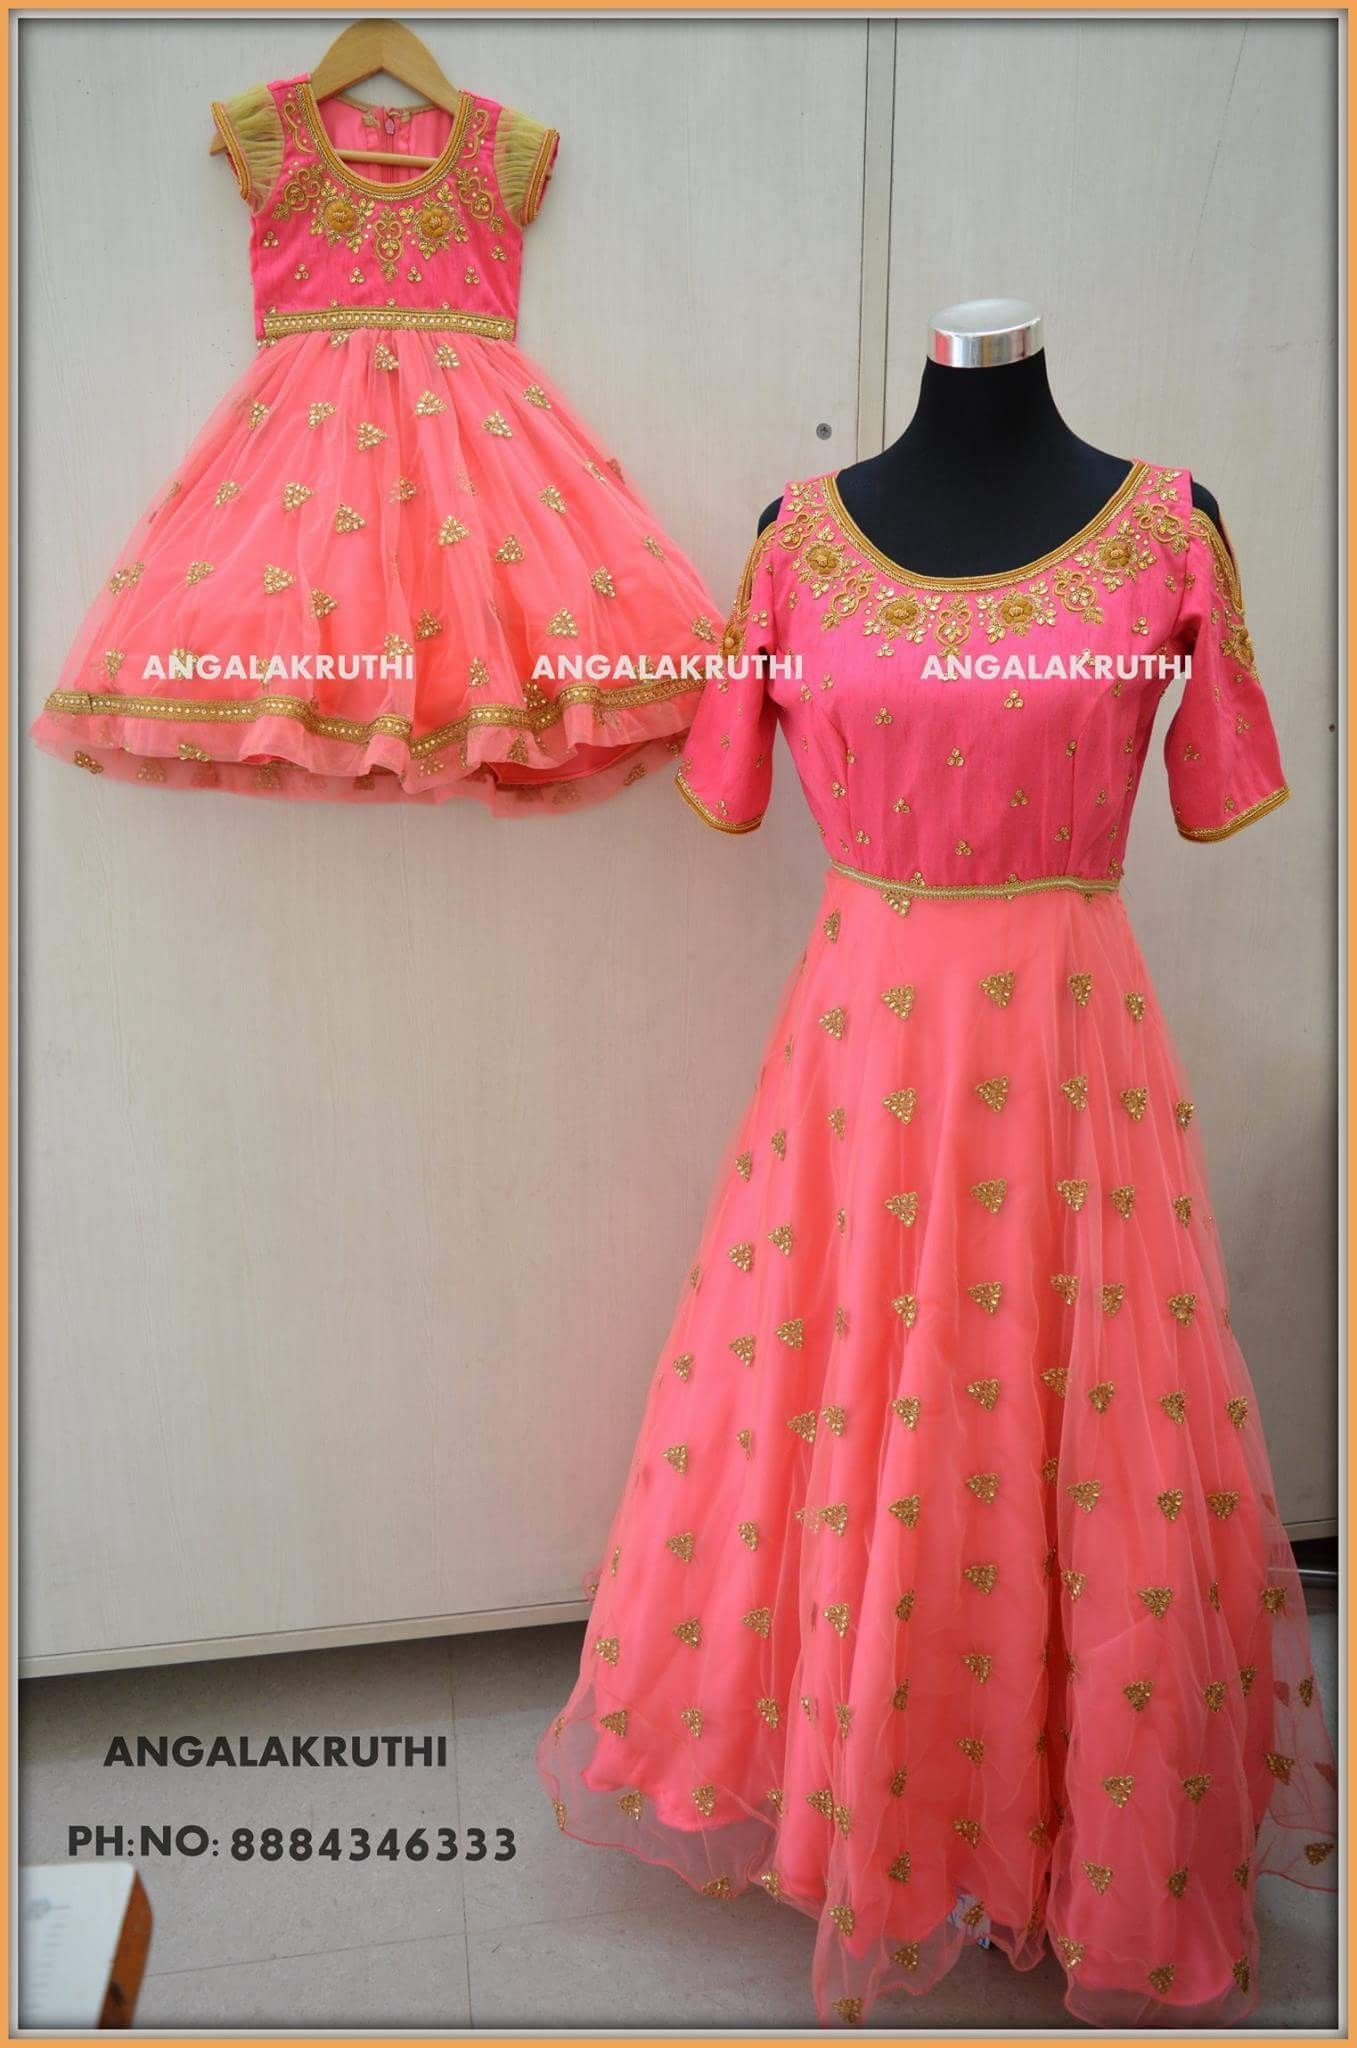 8050335edf Mother and Daughter matching dress designs by Angalakruthi boutique  Bangalore #Mom me dress designs by Angalakruthi boutique Bangalore